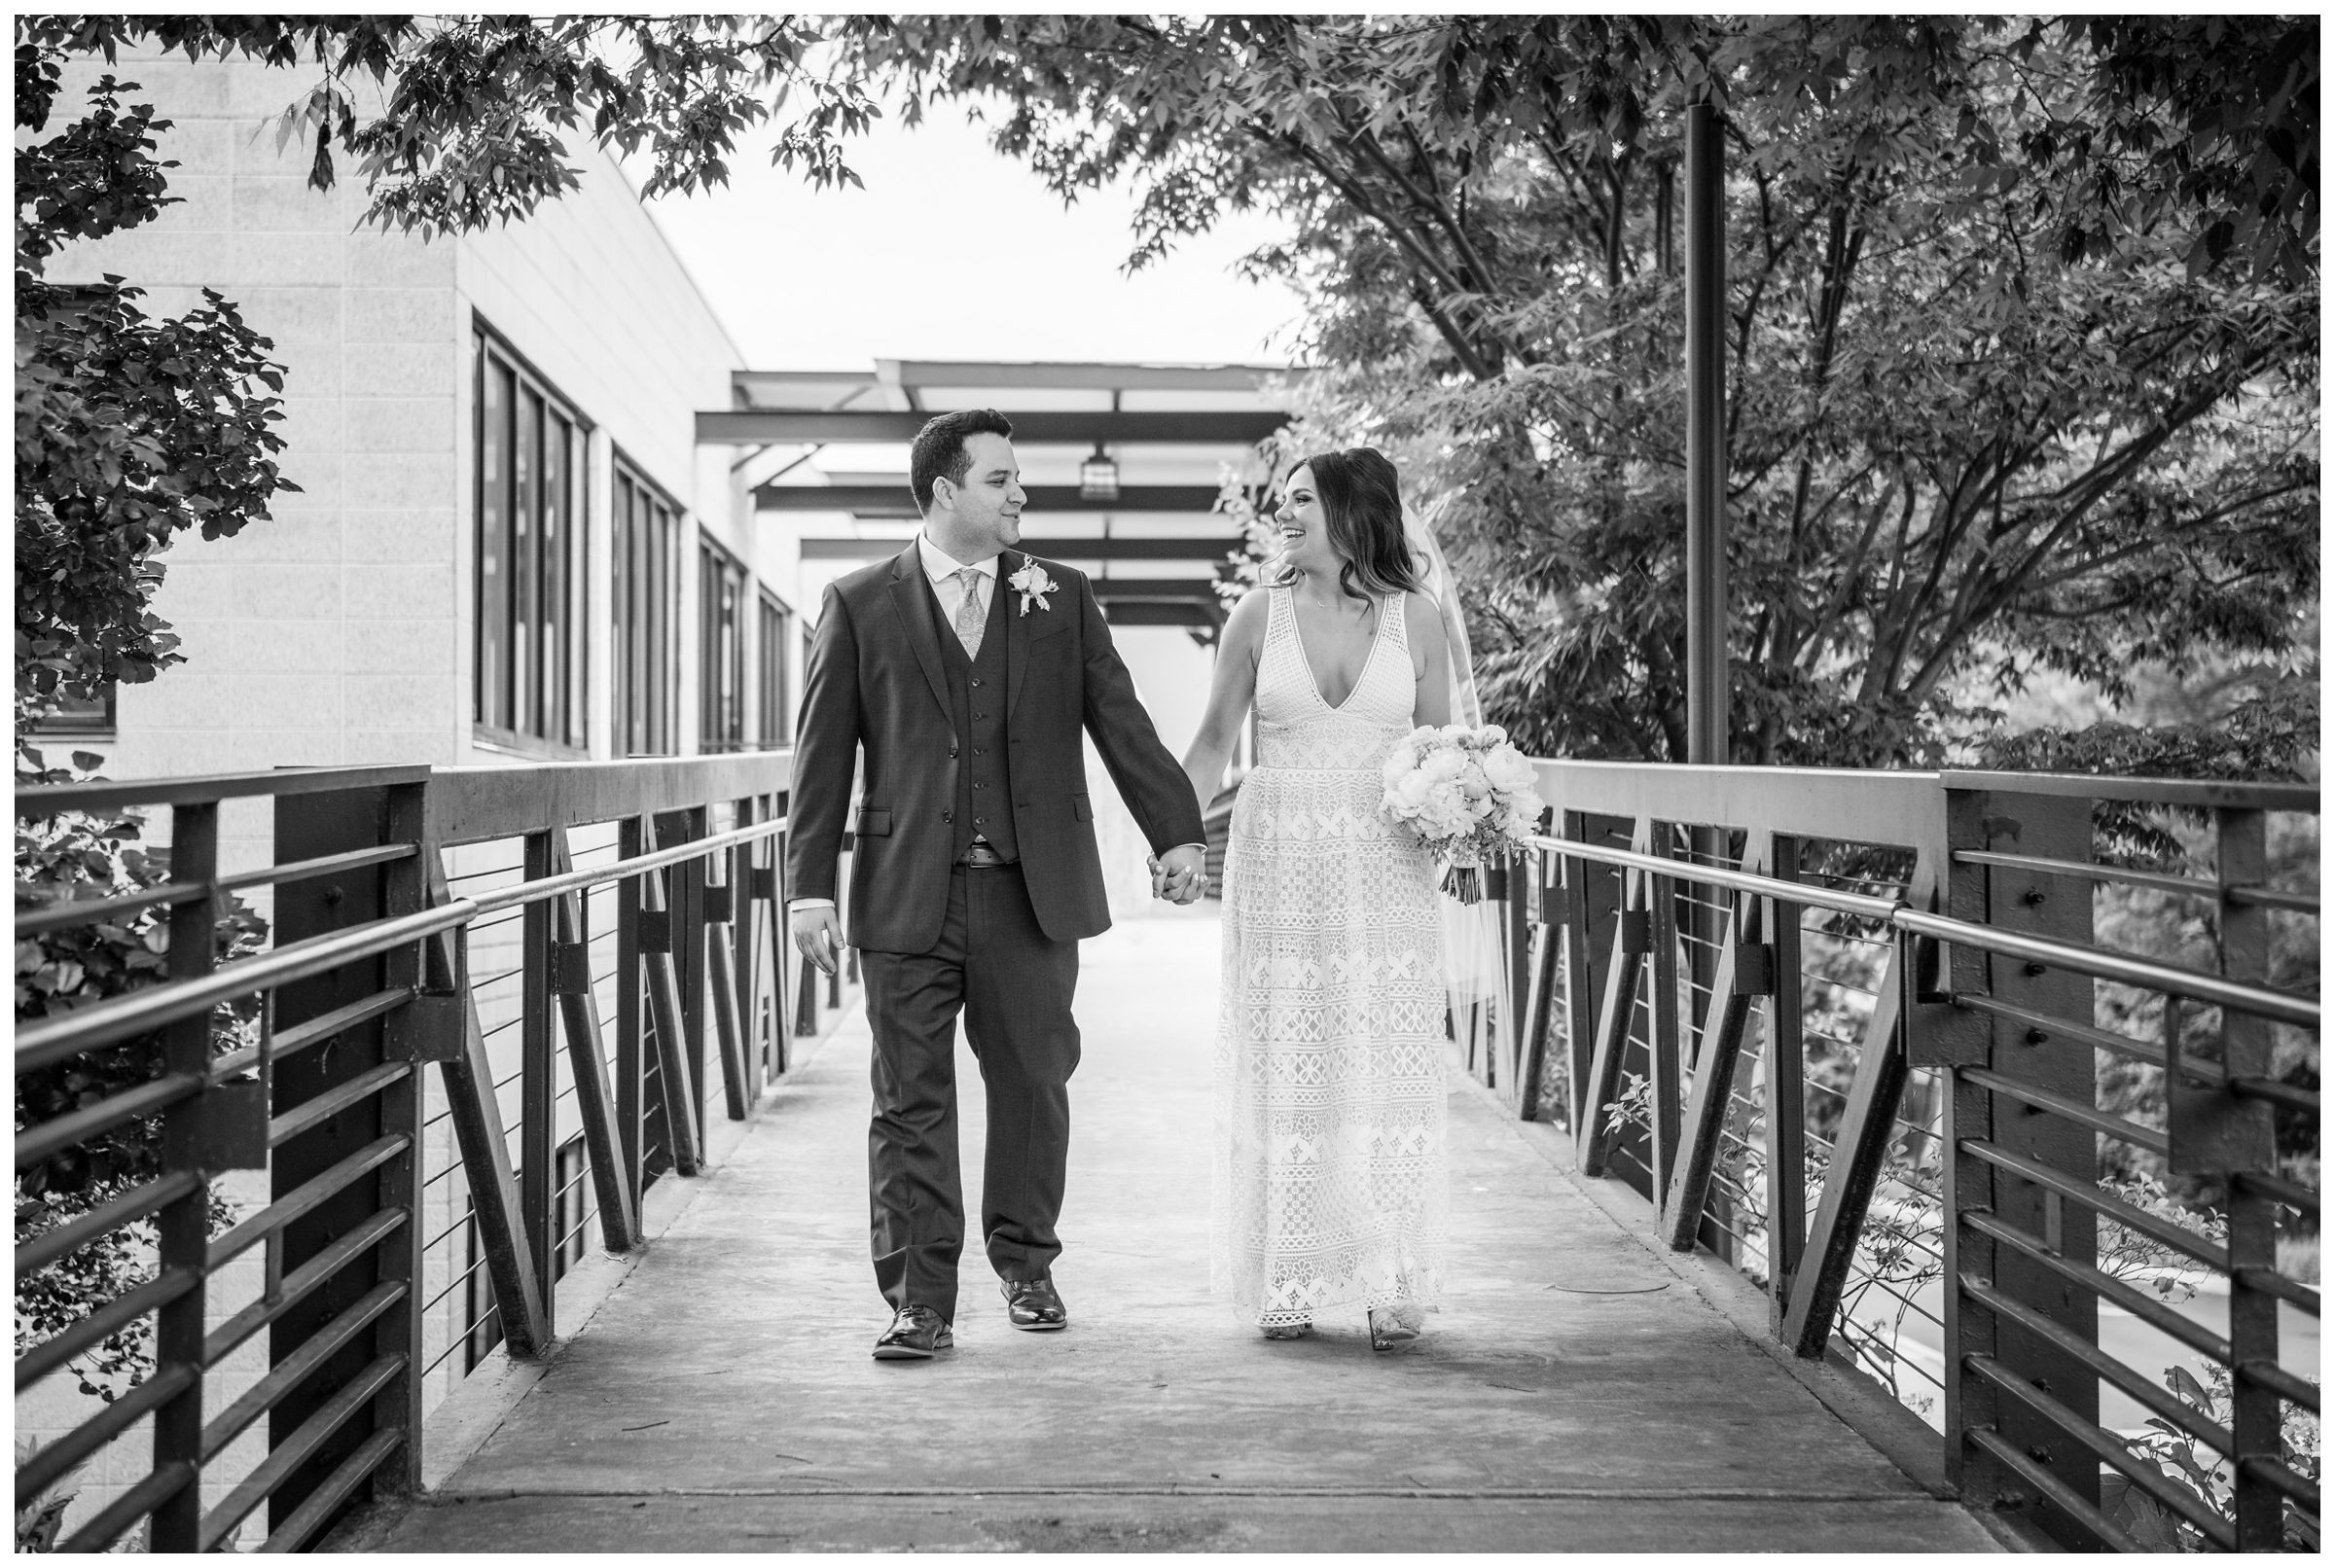 bride and groom exiting church after wedding ceremony at the Unitarian Universalist Church in Arlington, Virginia